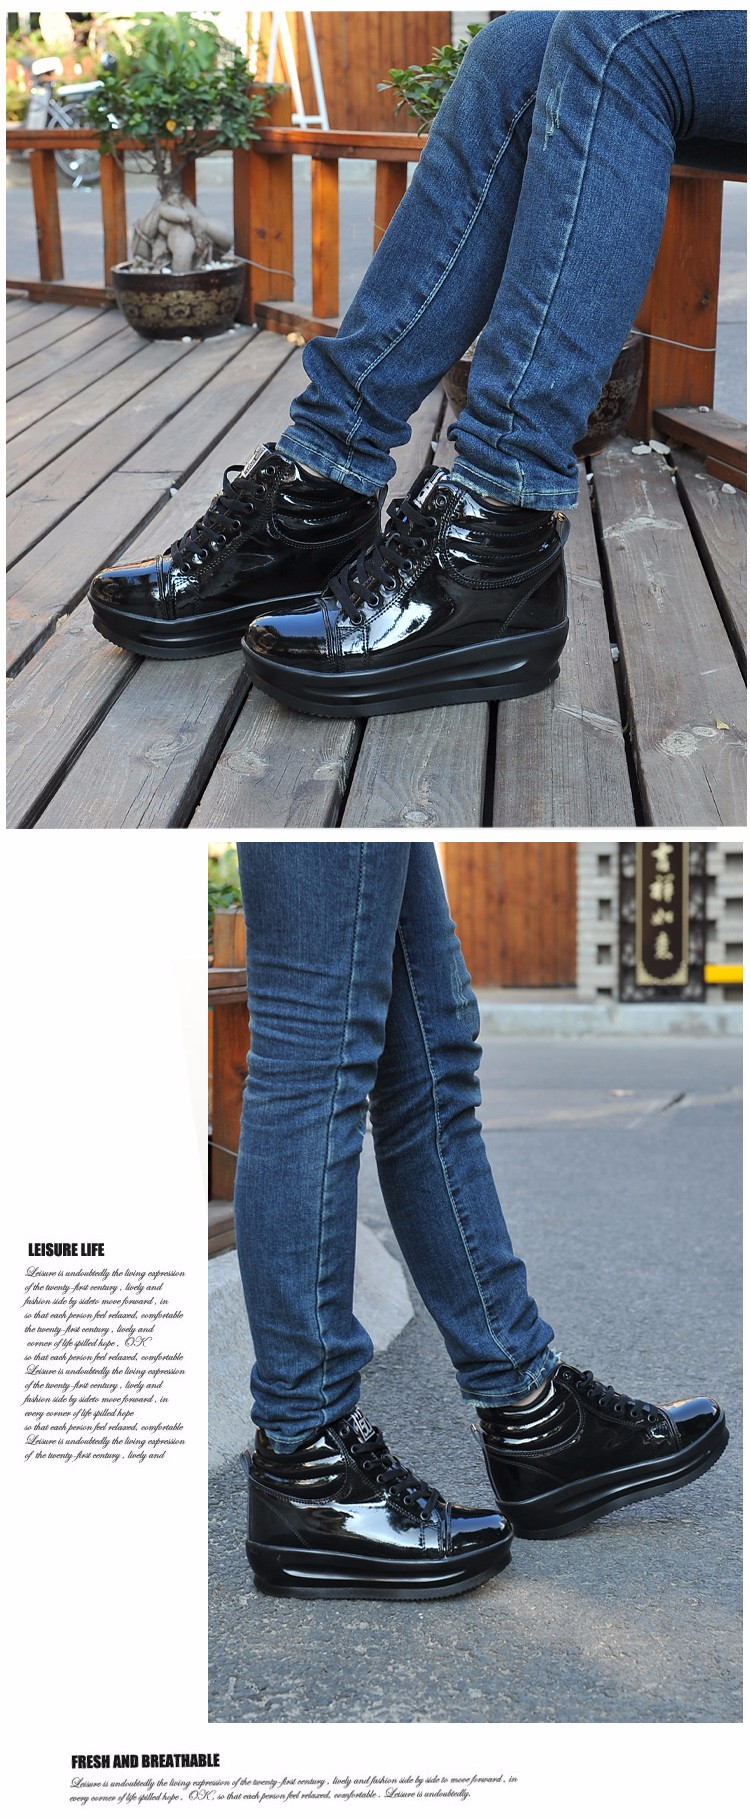 KUYUPP 2016 Fashion Hide Heel Women Casual Shoes Breathable Flat Platform Casual Women Shoes Patent Leather High Top Shoes YD105 (8)